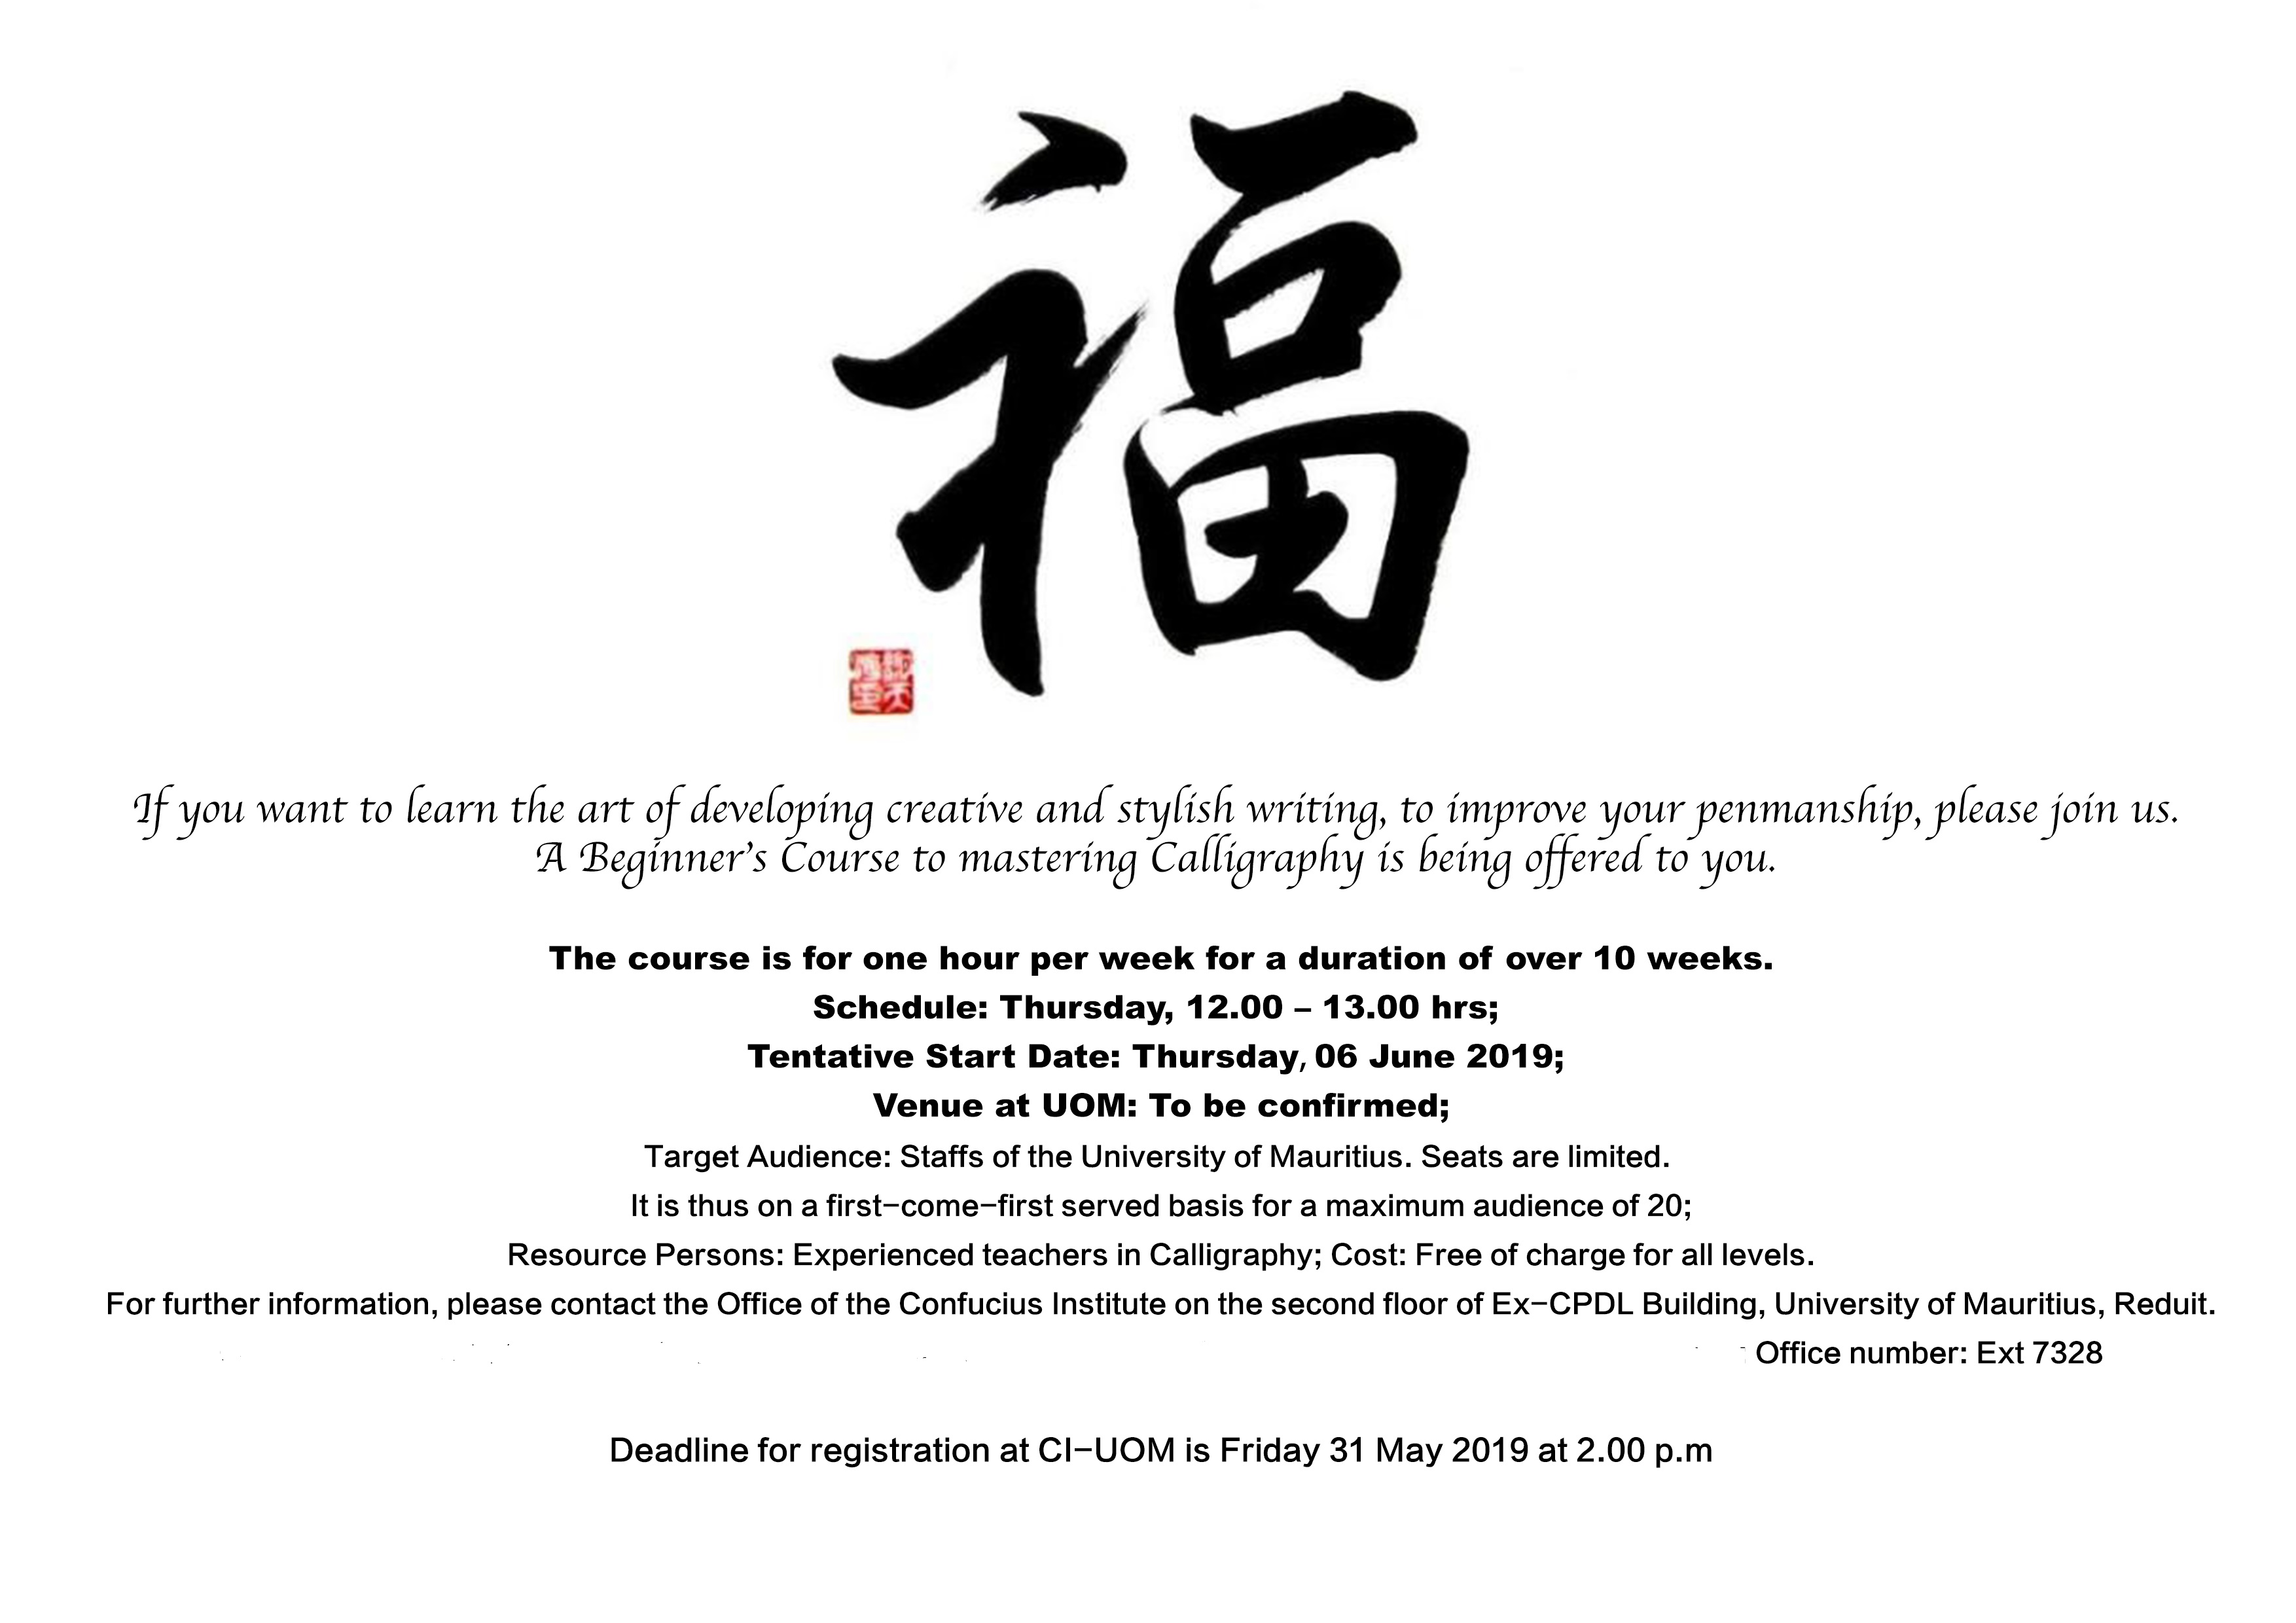 Beginner's Level Calligraphy Staff  Advert May 2019